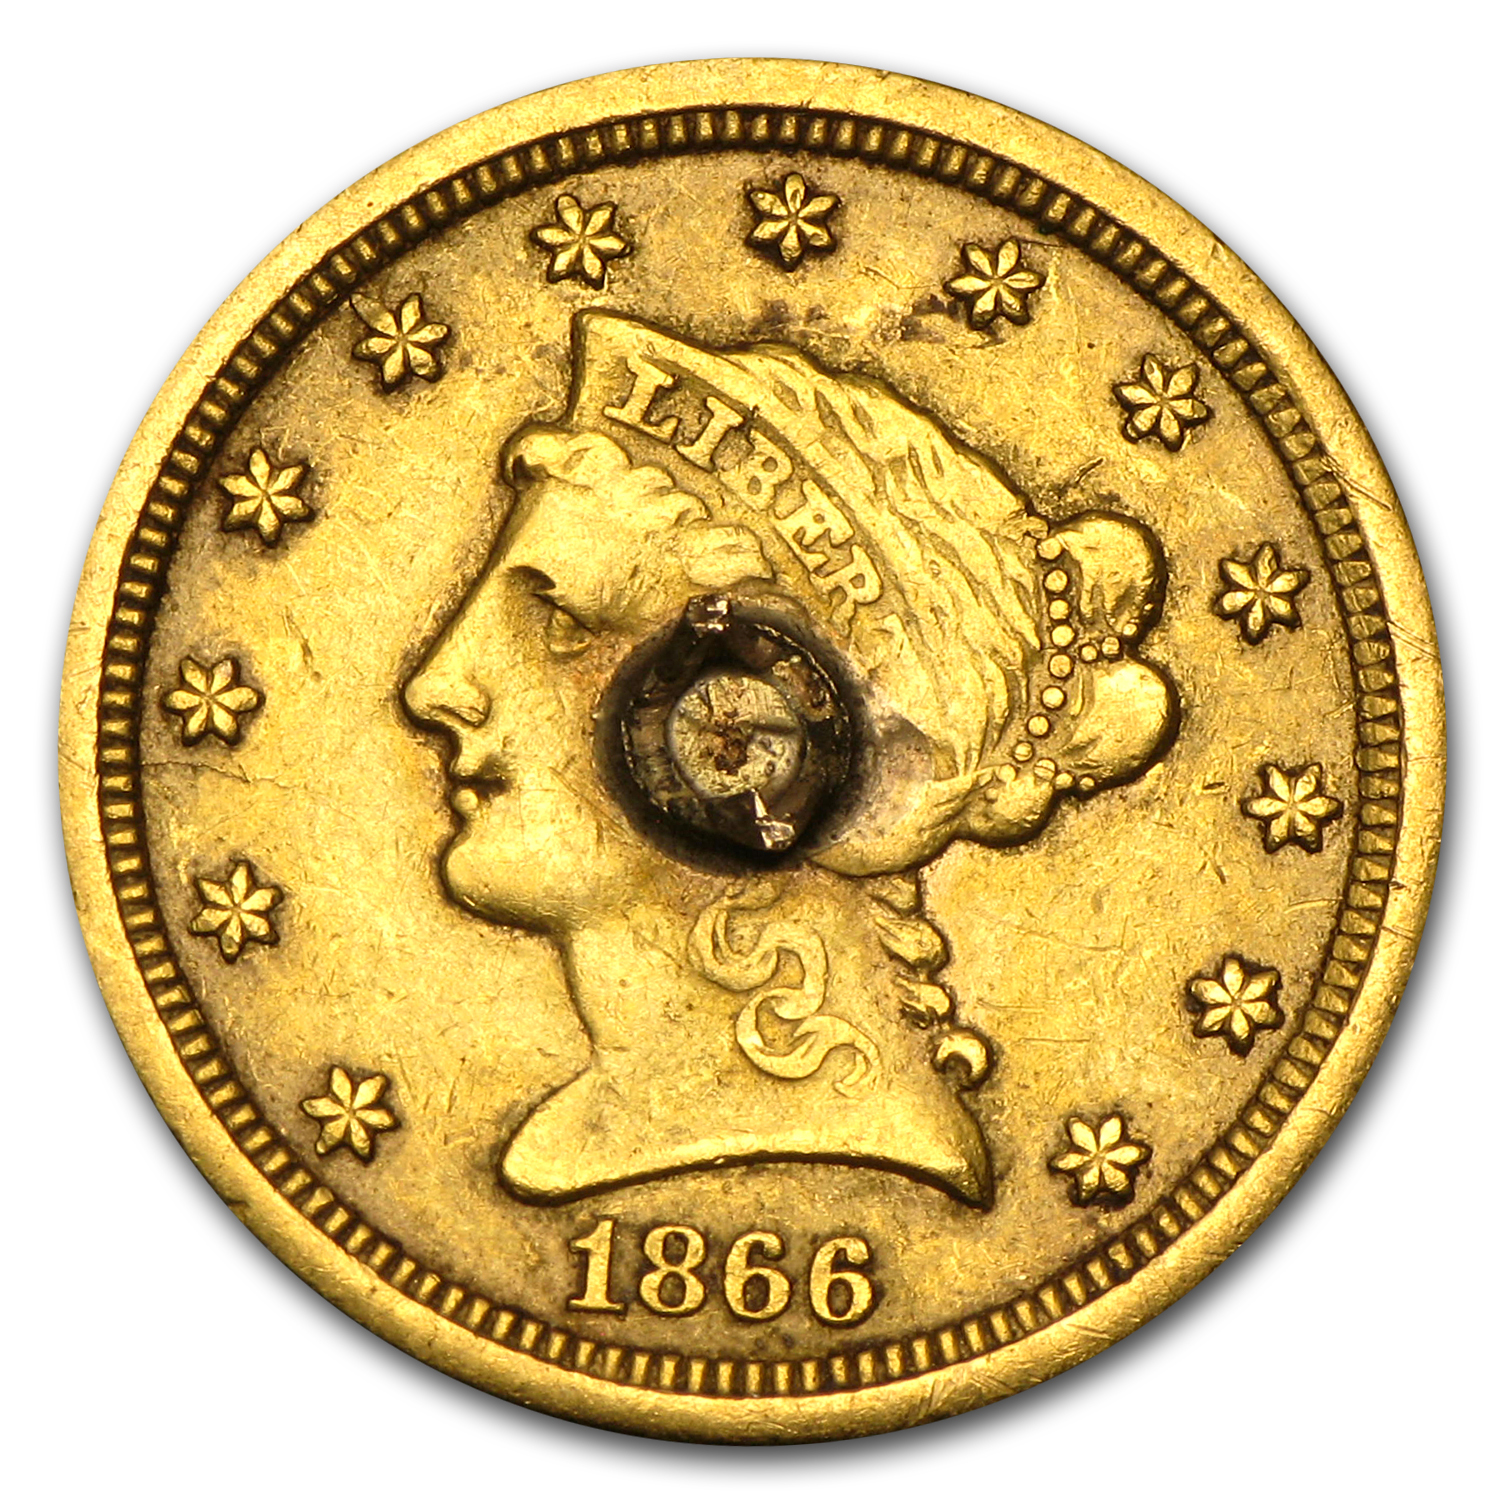 $2.50 Liberty Gold Quarter Eagle - 1866 Love Token - N P M